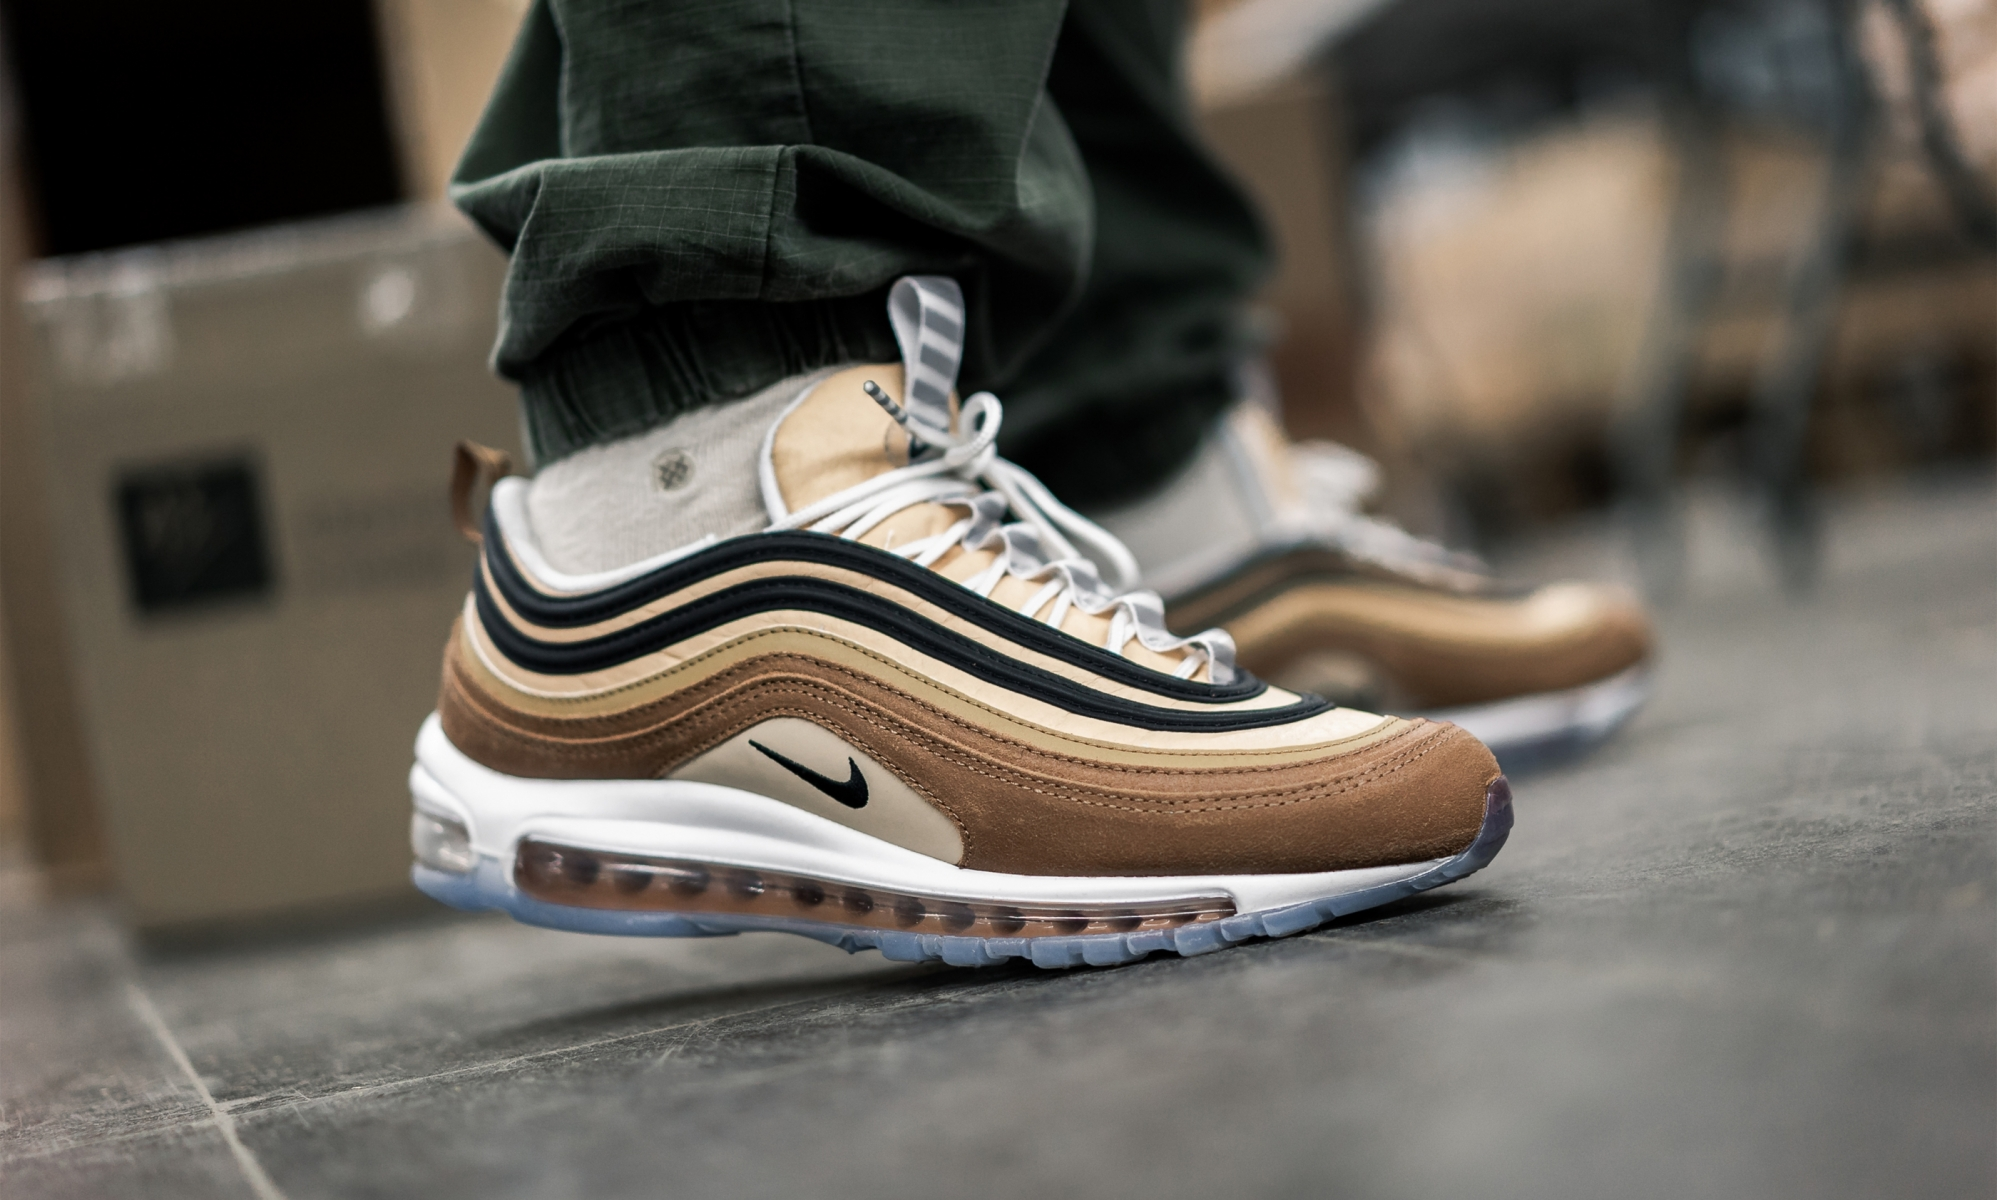 Nike 97 Ale Brown Black Elemental Gold (1-2)